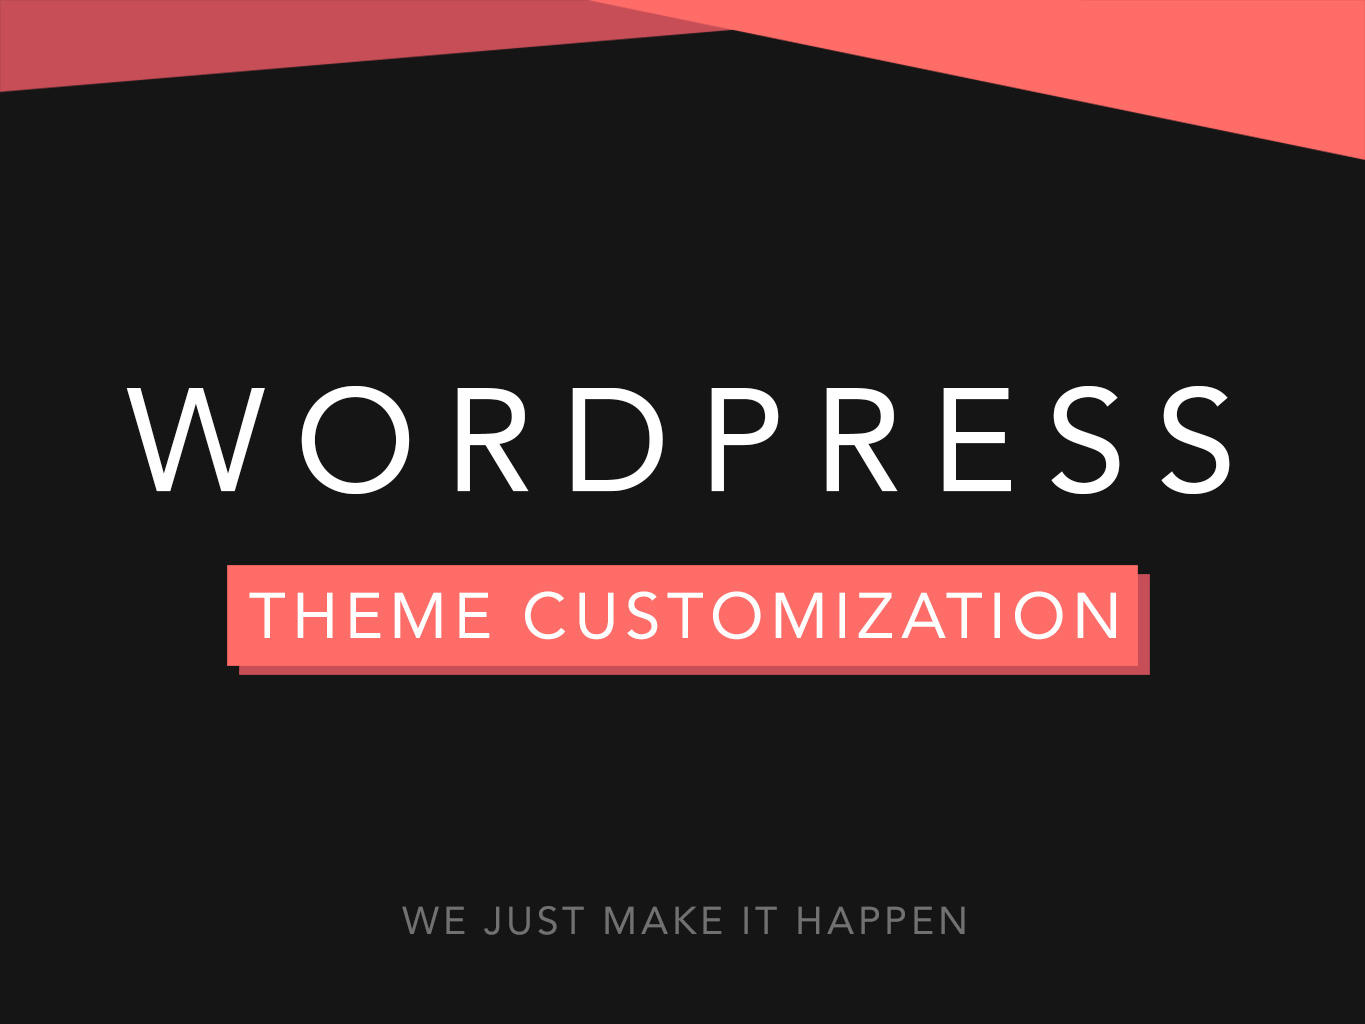 WordPress Customization: Branding, Content Setup, Plugin Installation by BioXD - 71597